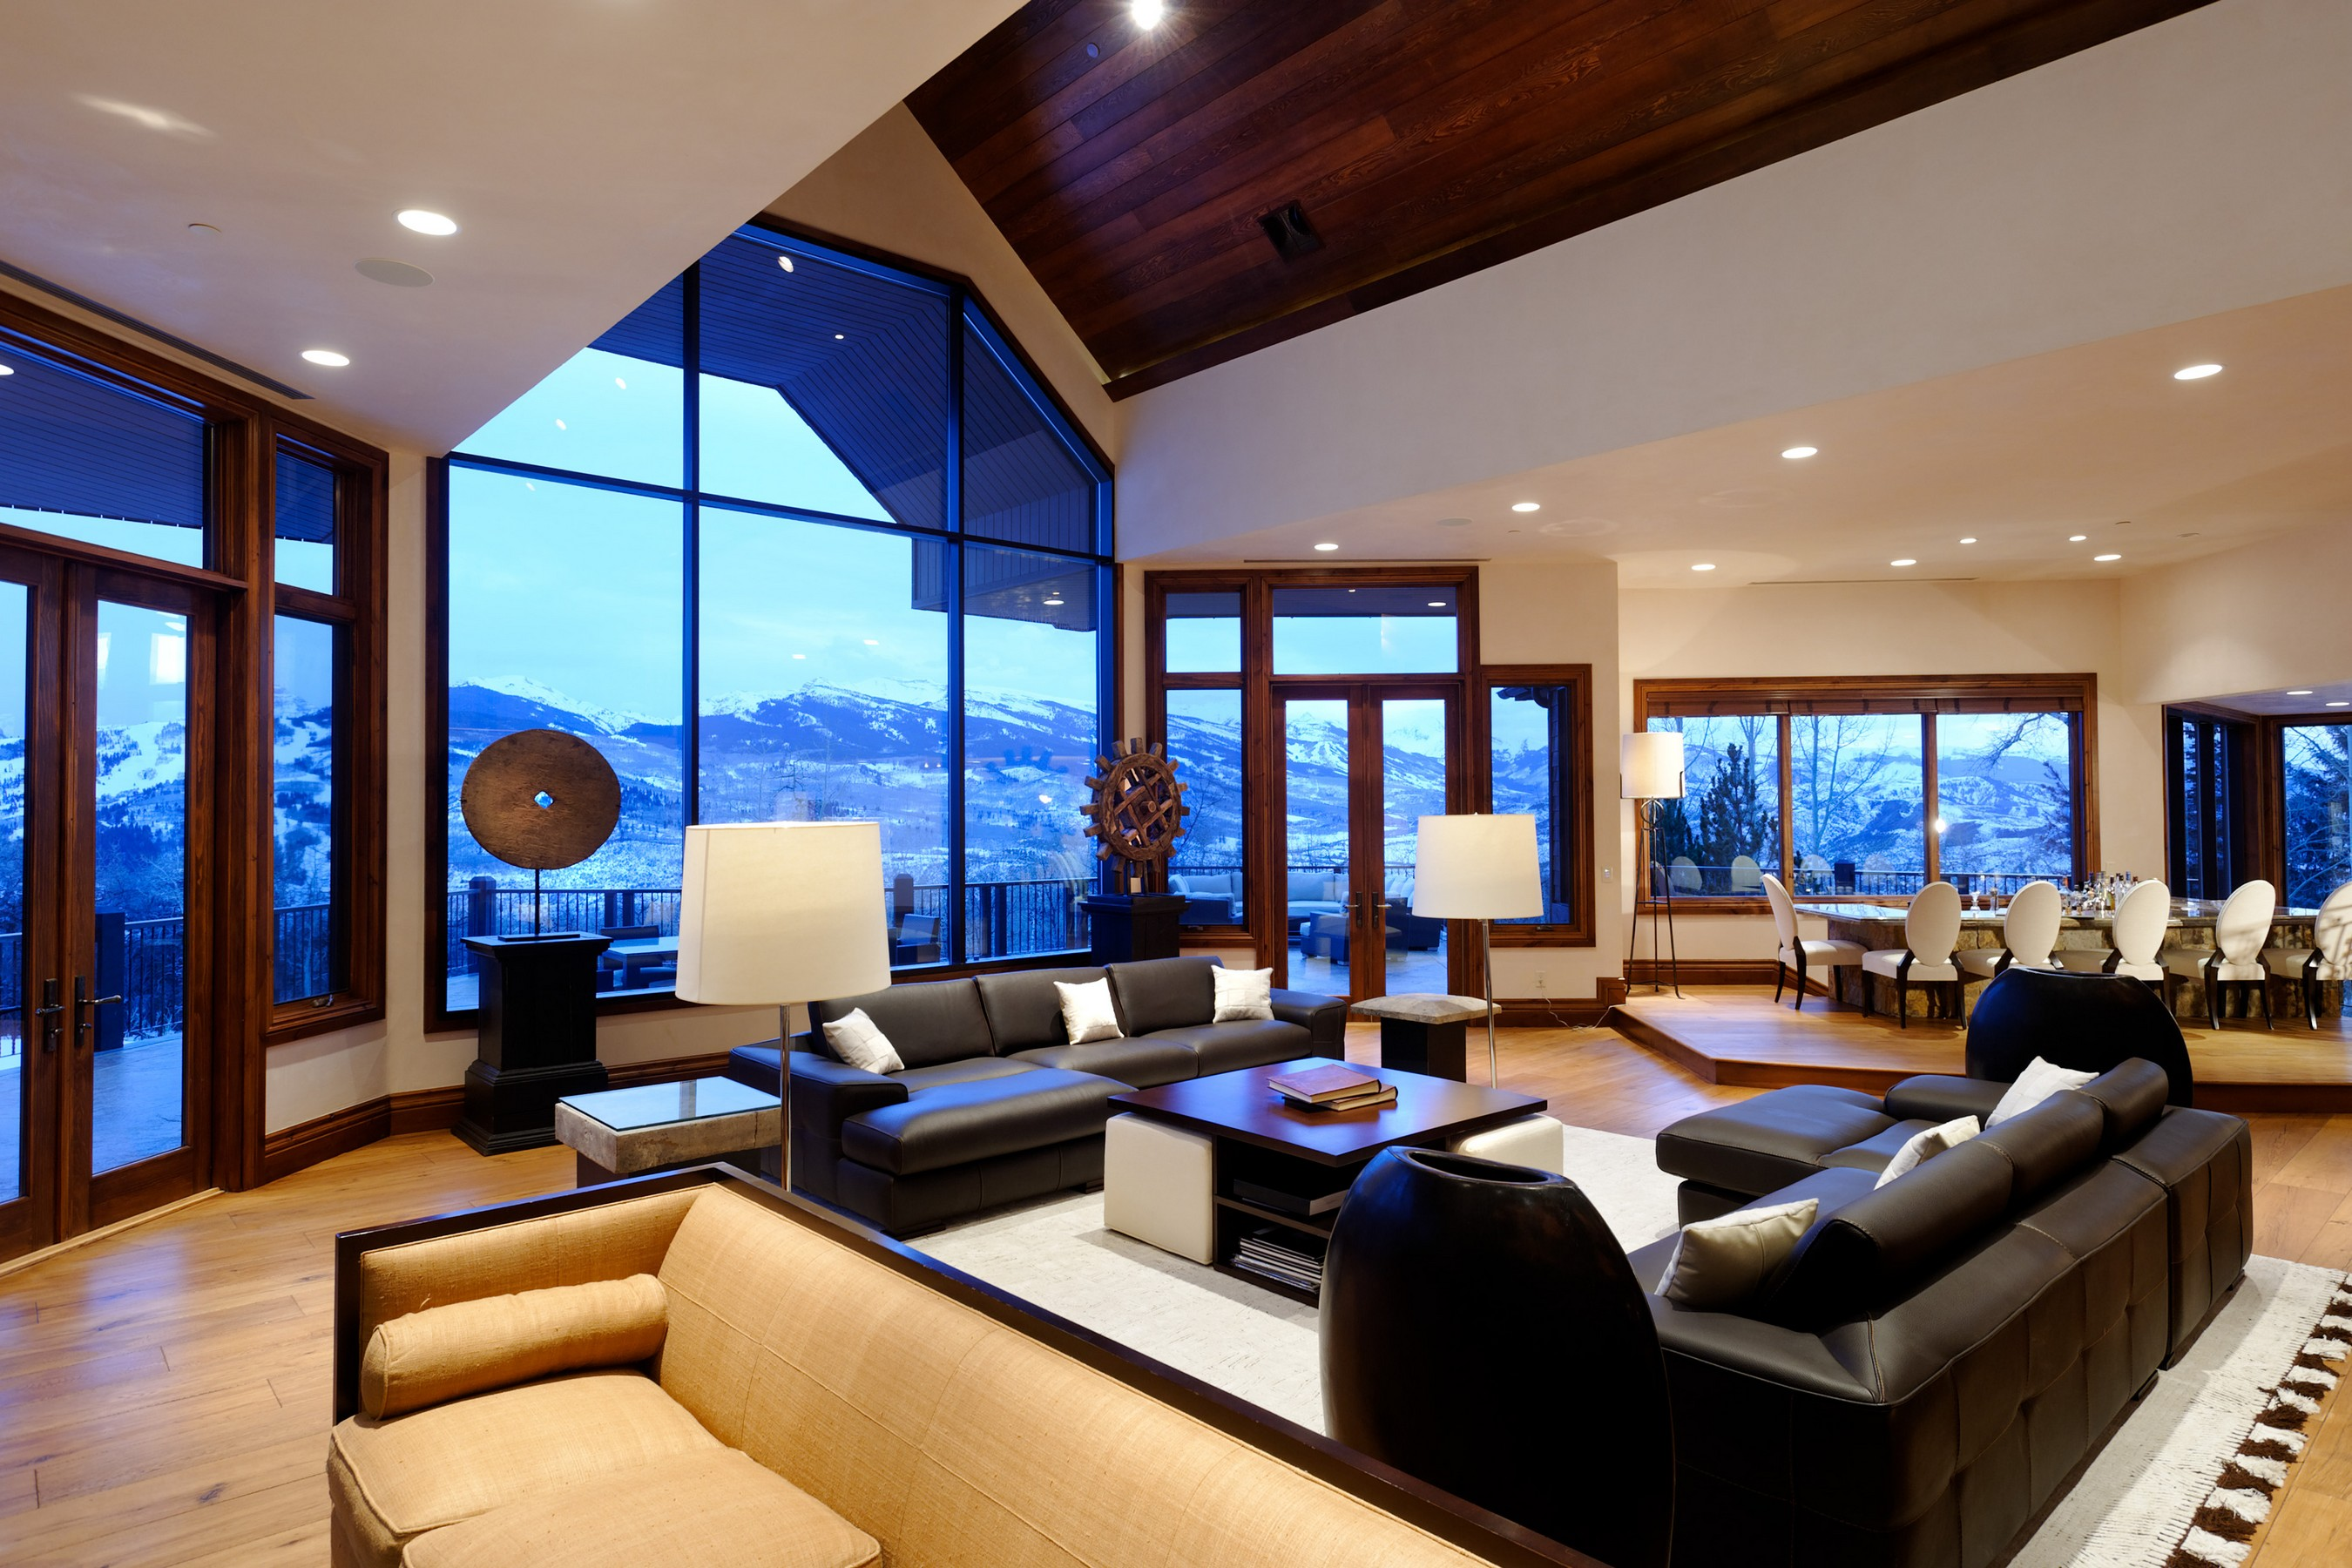 Maison unifamiliale pour l Vente à Front Row in Starwood 876 South Starwood Drive Aspen, Colorado, 81611 États-Unis